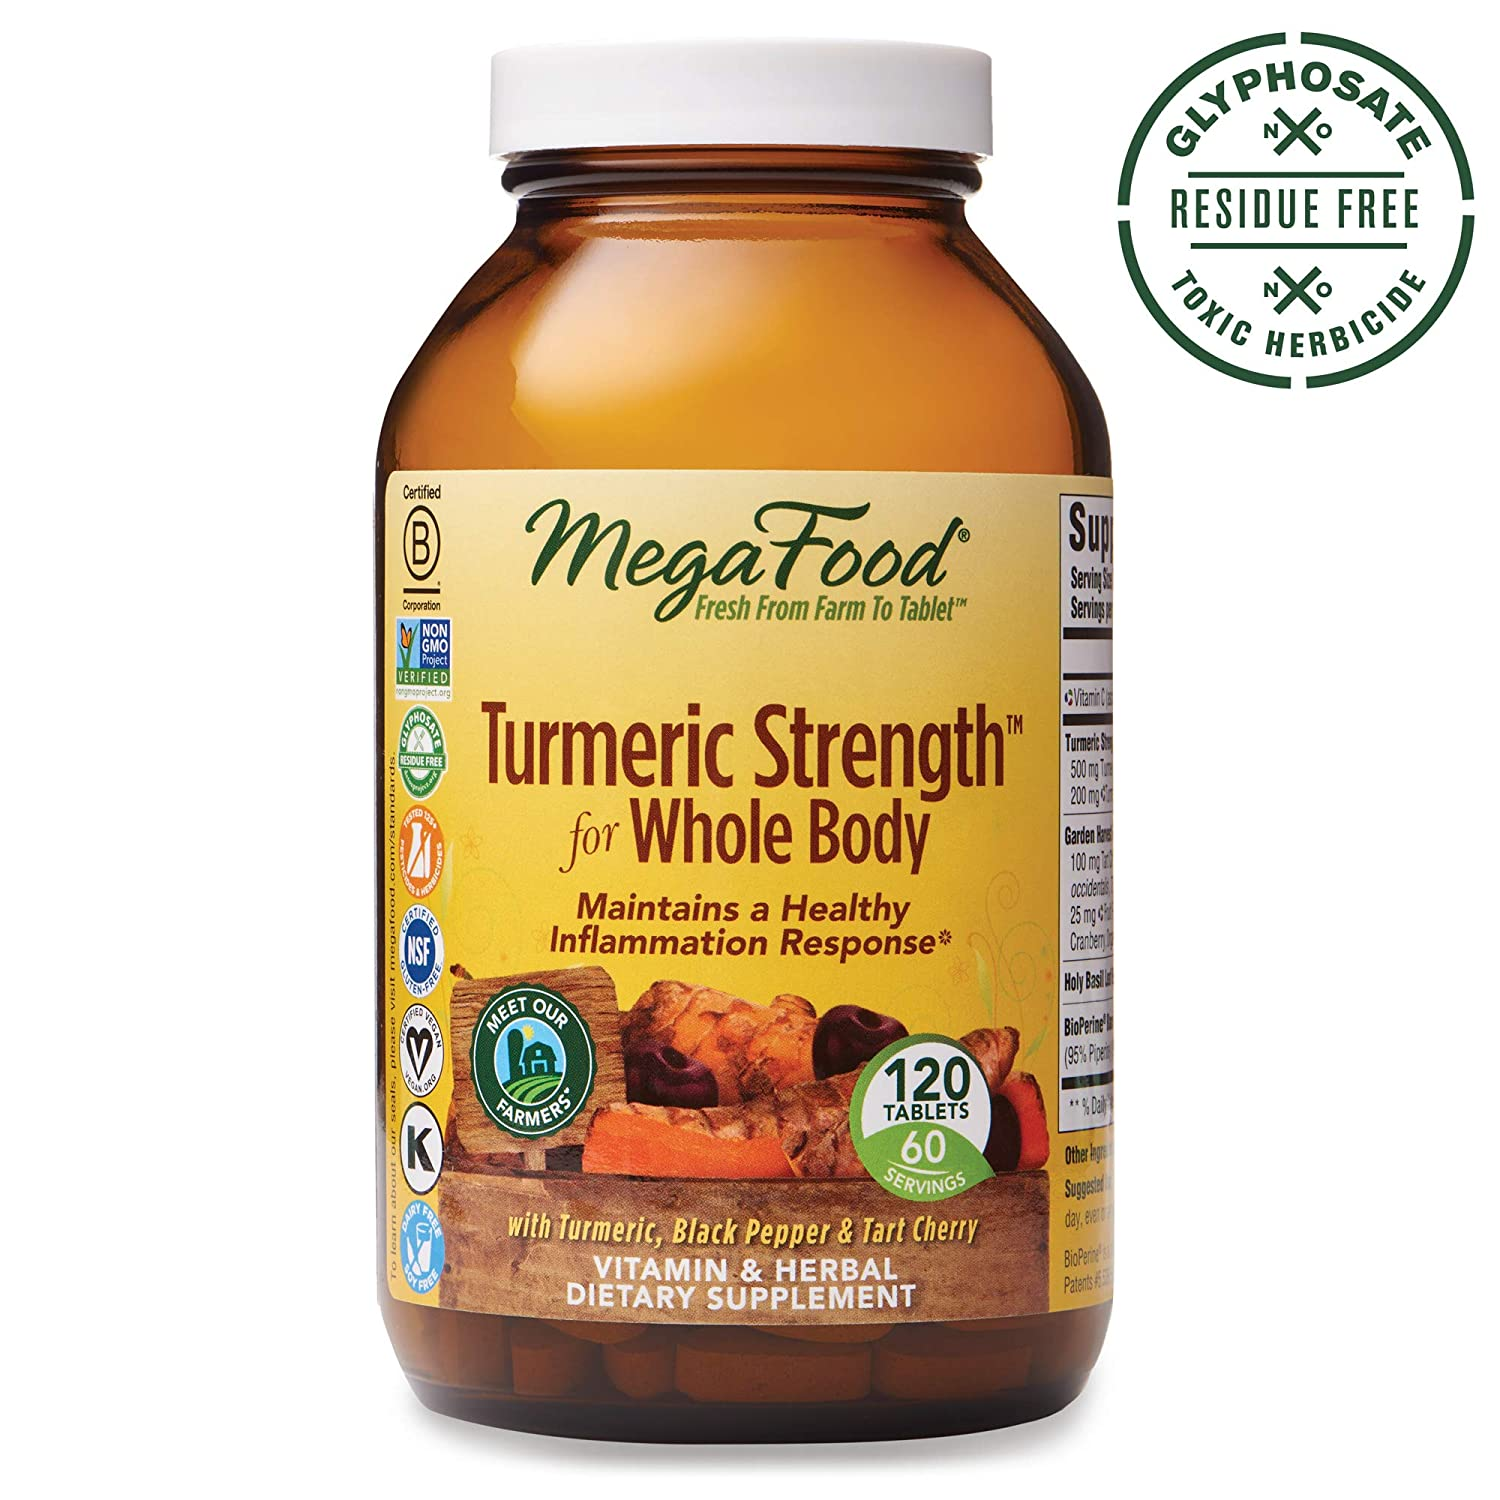 MegaFood, Turmeric Strength for Whole Body, Maintains a Healthy Inflammation Response, Vitamin and Herbal Dietary Supplement, Gluten Free, Vegan, 120 Tablets 60 Servings FFP